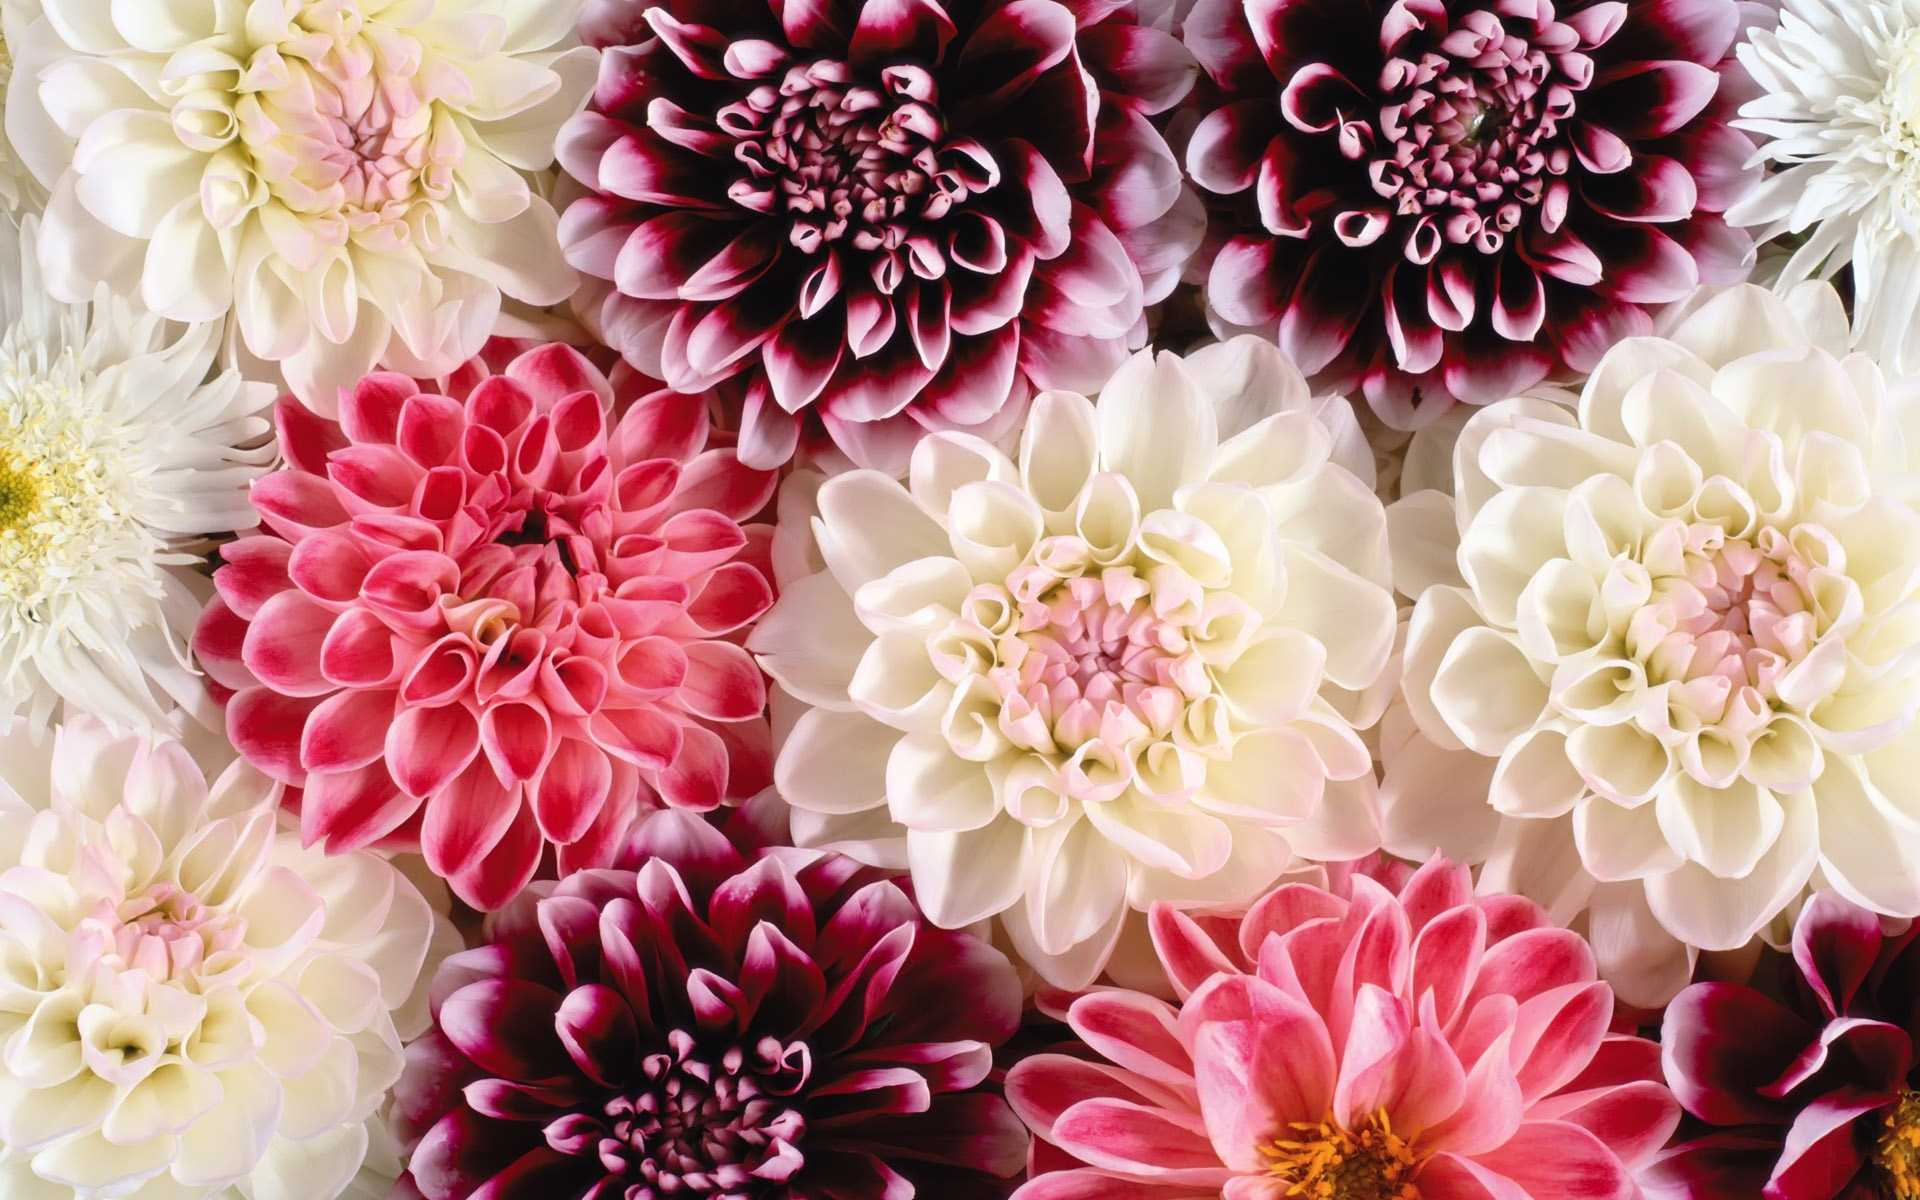 Flower Wallpapers and Backgrounds - Apps on Google Play